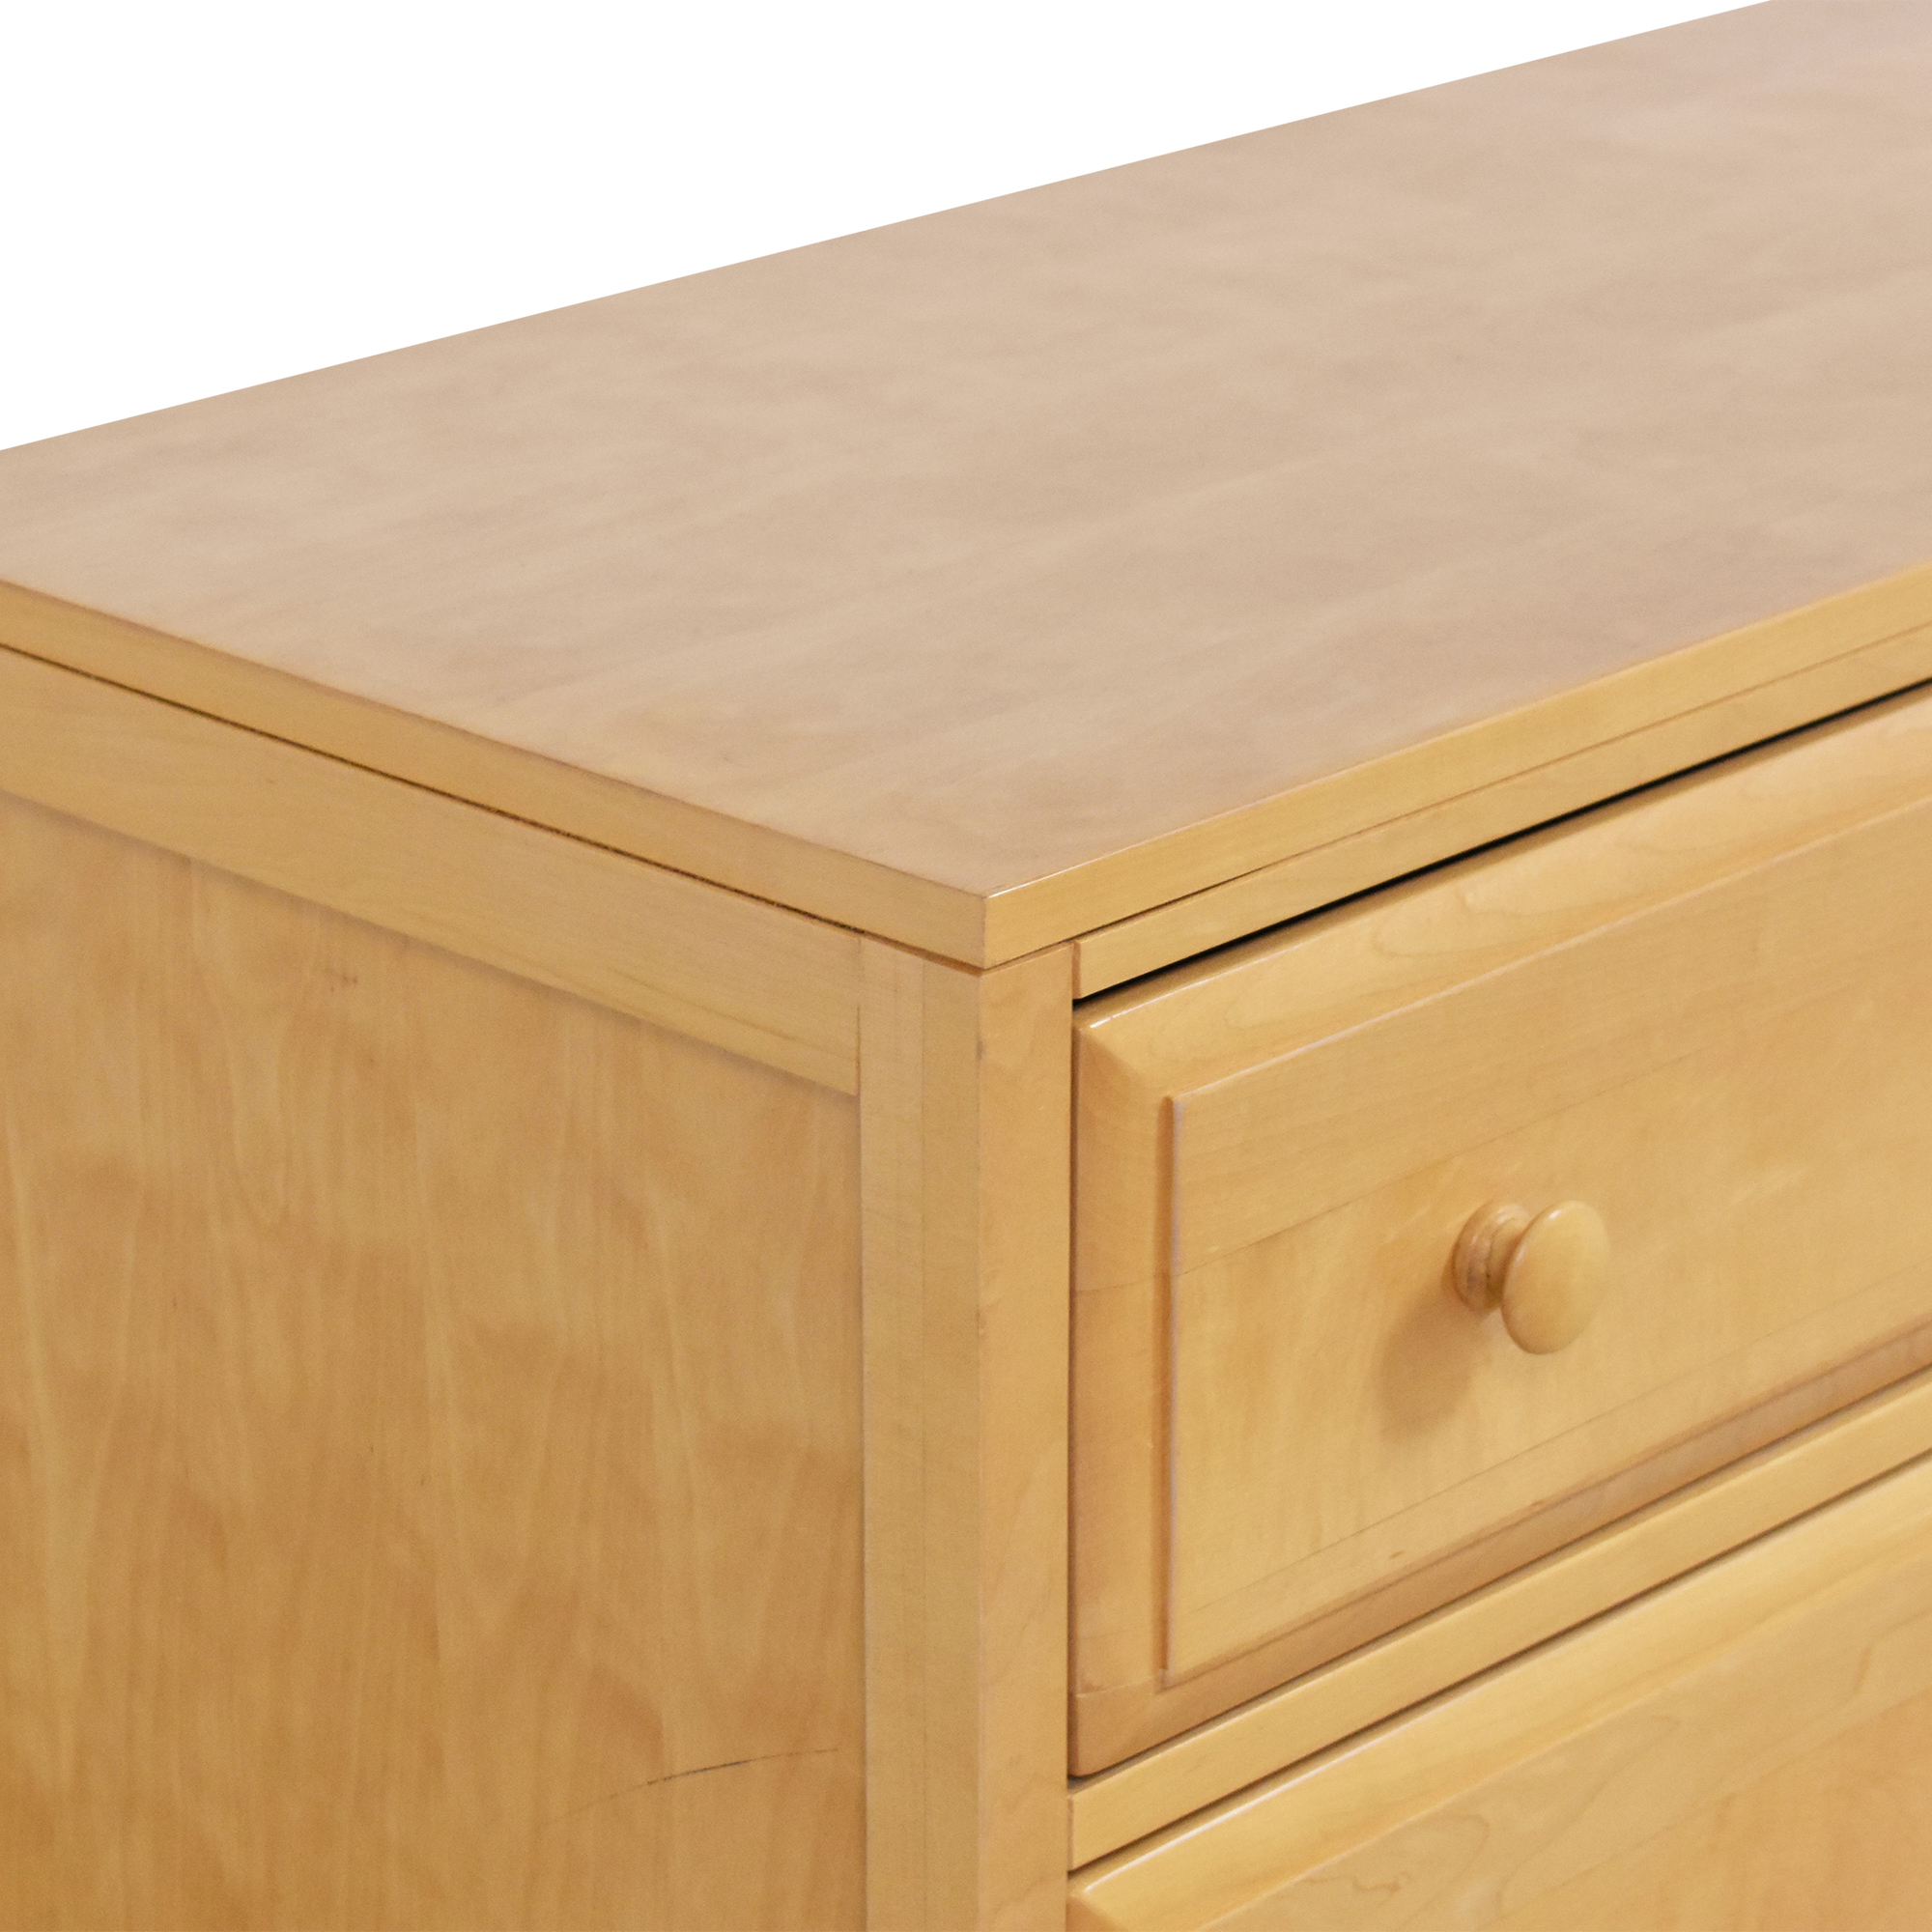 Six Drawer Double Dresser used